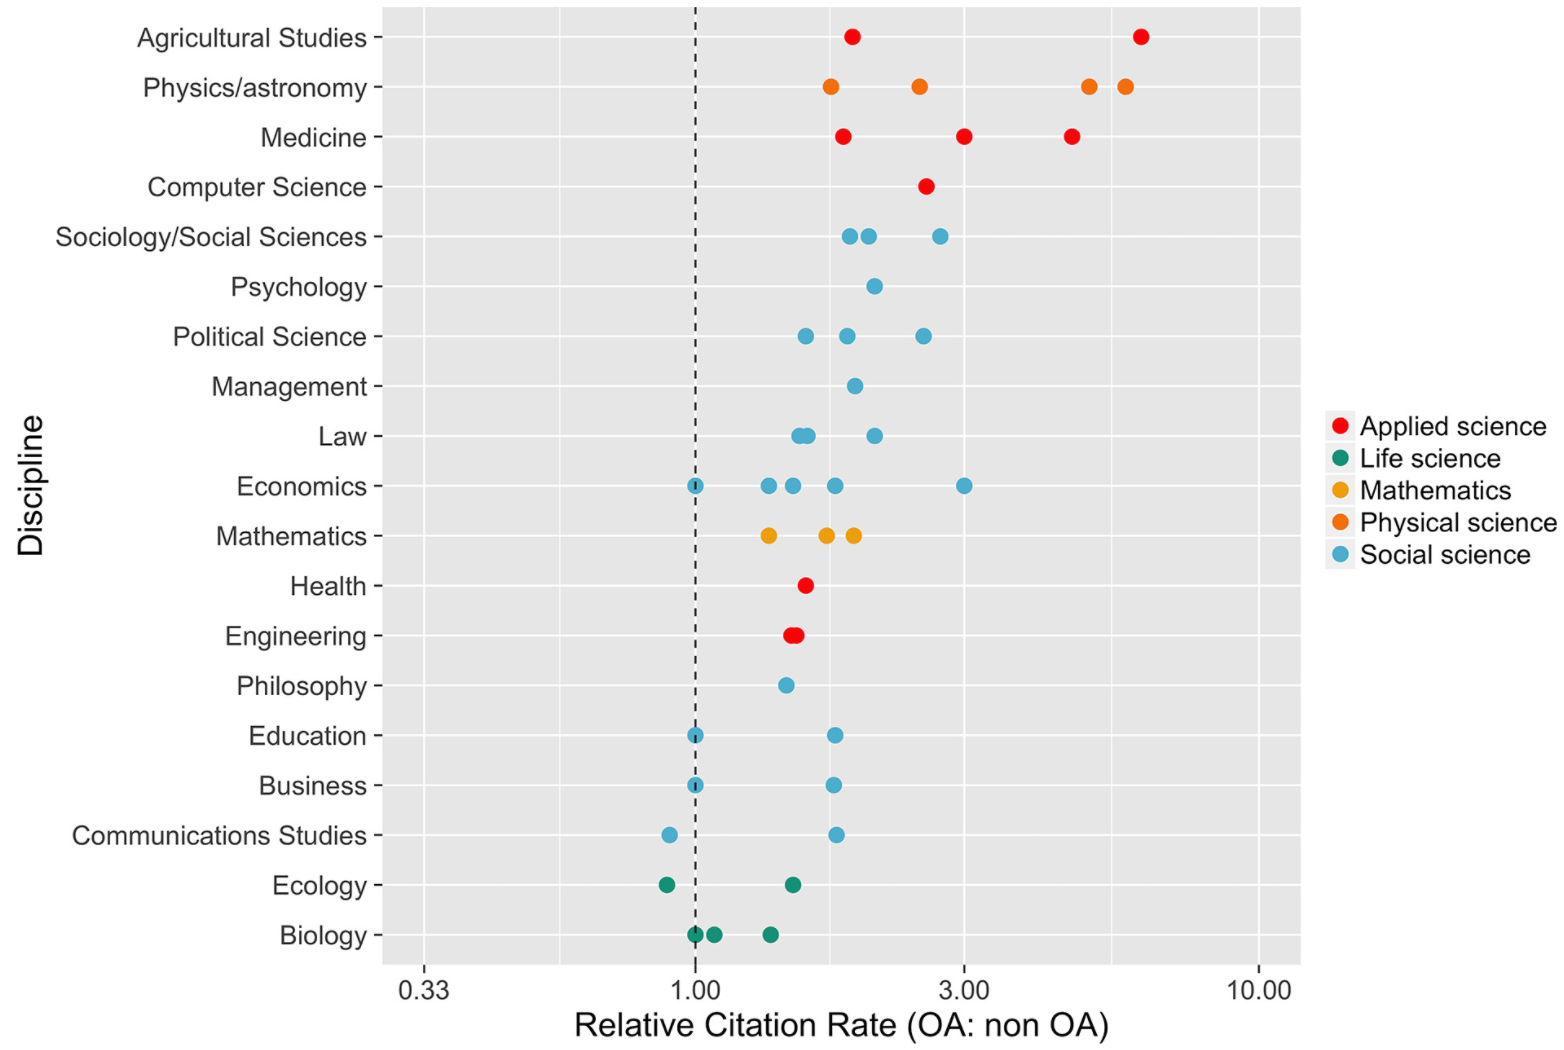 Figure 1. Open access publications are cited more often. In this chart McKiernan et al. show the relative citation rate (average citations of open access articles divided by average citations of non-open access articles) for various fields, based on evaluations of several statistical studies. [Figure 1 of the paper]